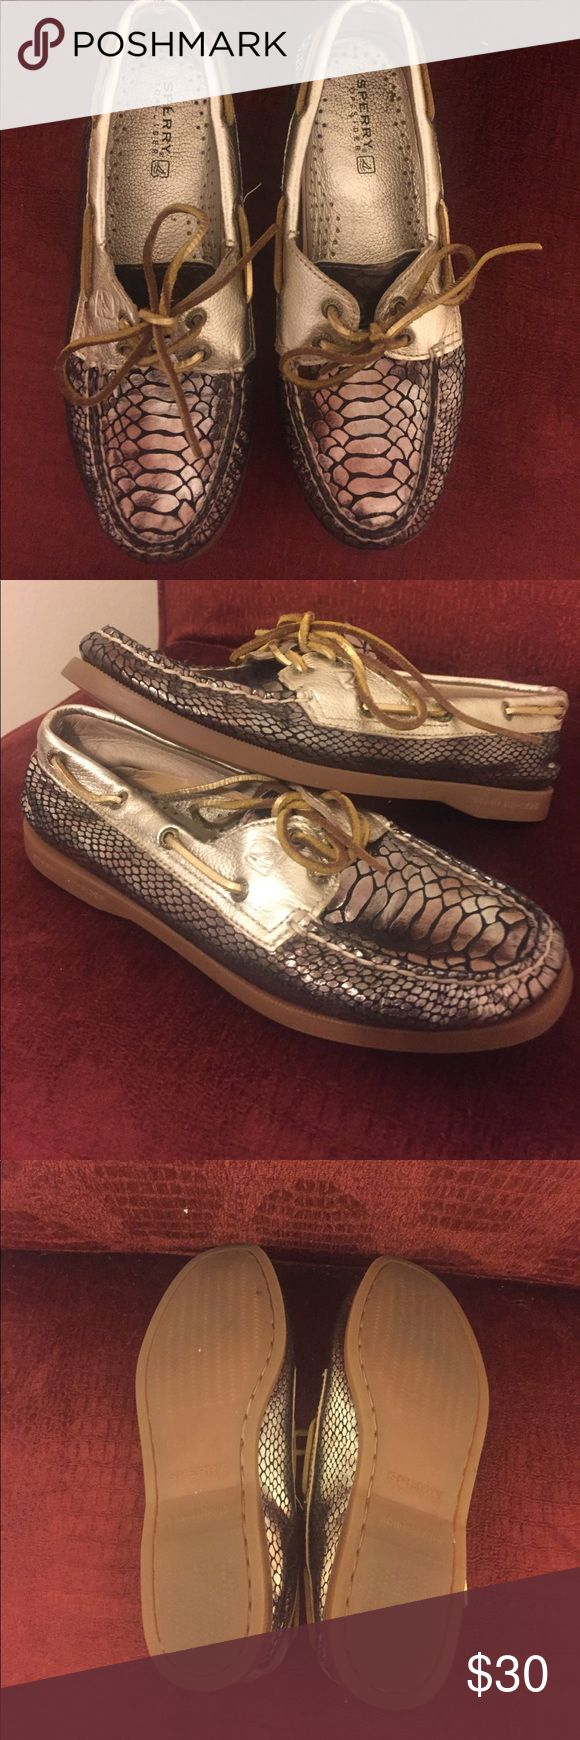 Metallic Sperry's hardly worn Gorgeous metallic Sperry shoes. Leather laces still in tact. Sperry Top-Sider Shoes Flats & Loafers